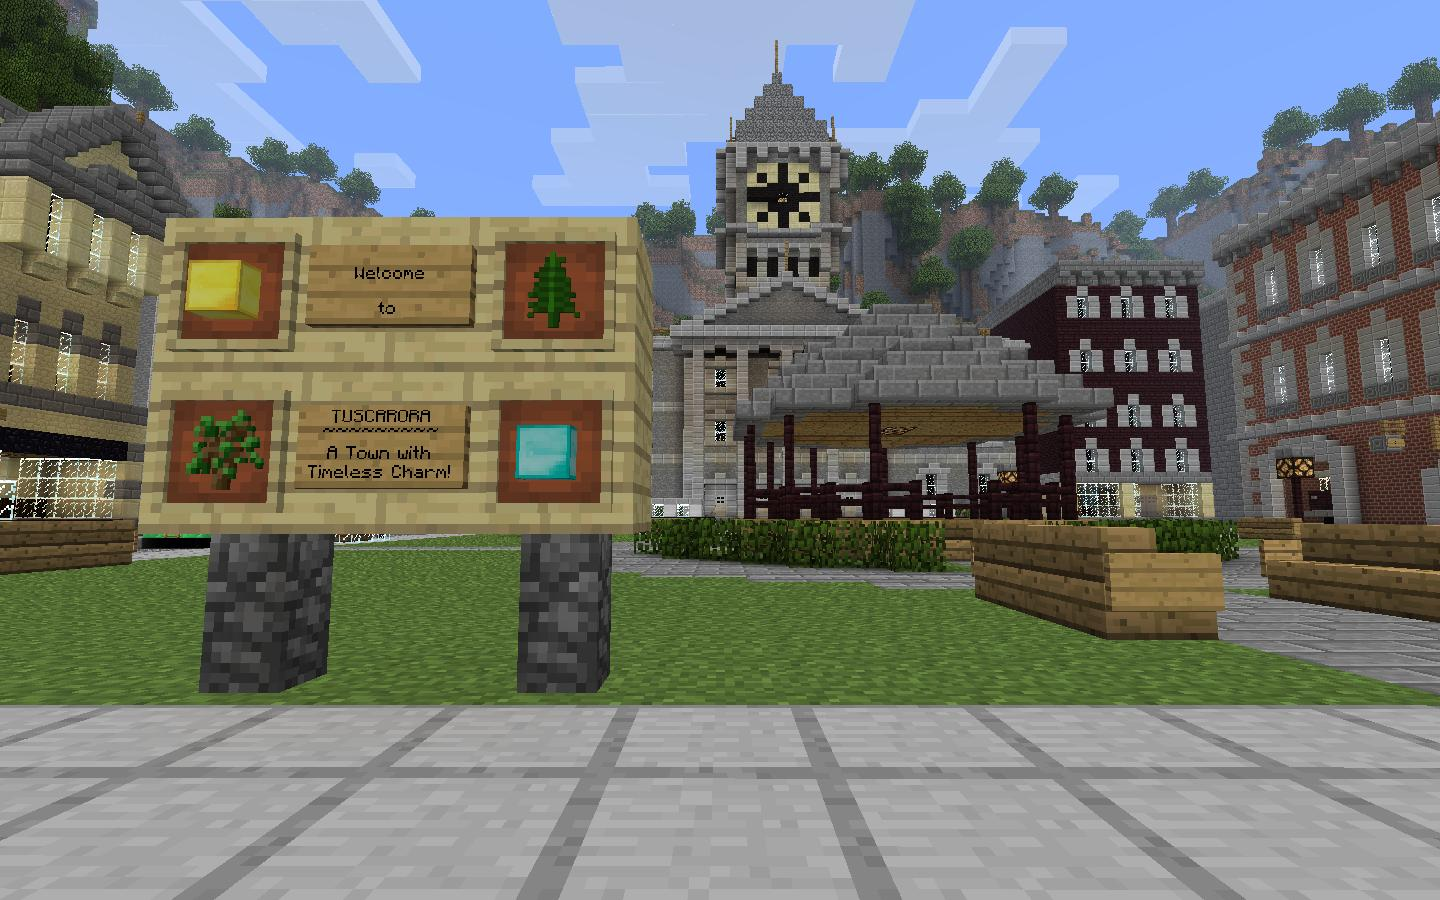 http://img.niceminecraft.net/Map/A-Day-in-Tuscarora-Map-1.jpg